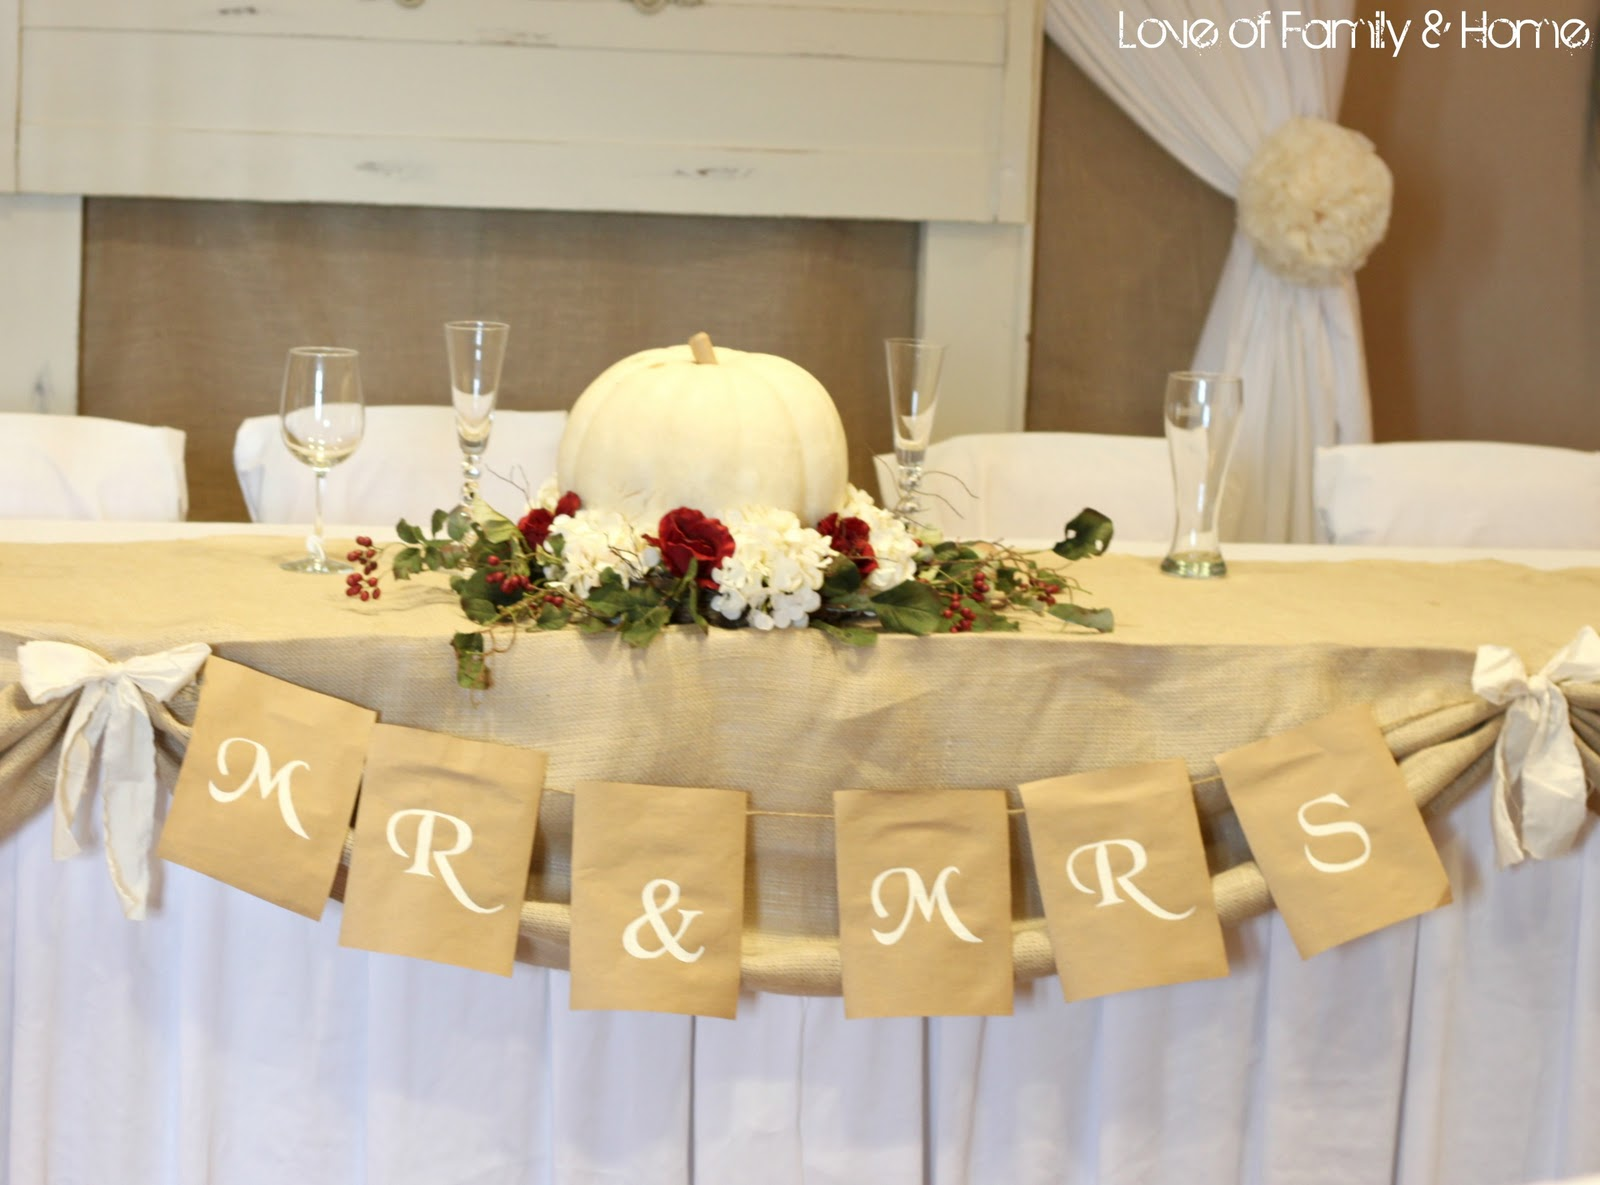 whisperwood cottage burlap month features 10 burlap inspired wedding ideas. Black Bedroom Furniture Sets. Home Design Ideas